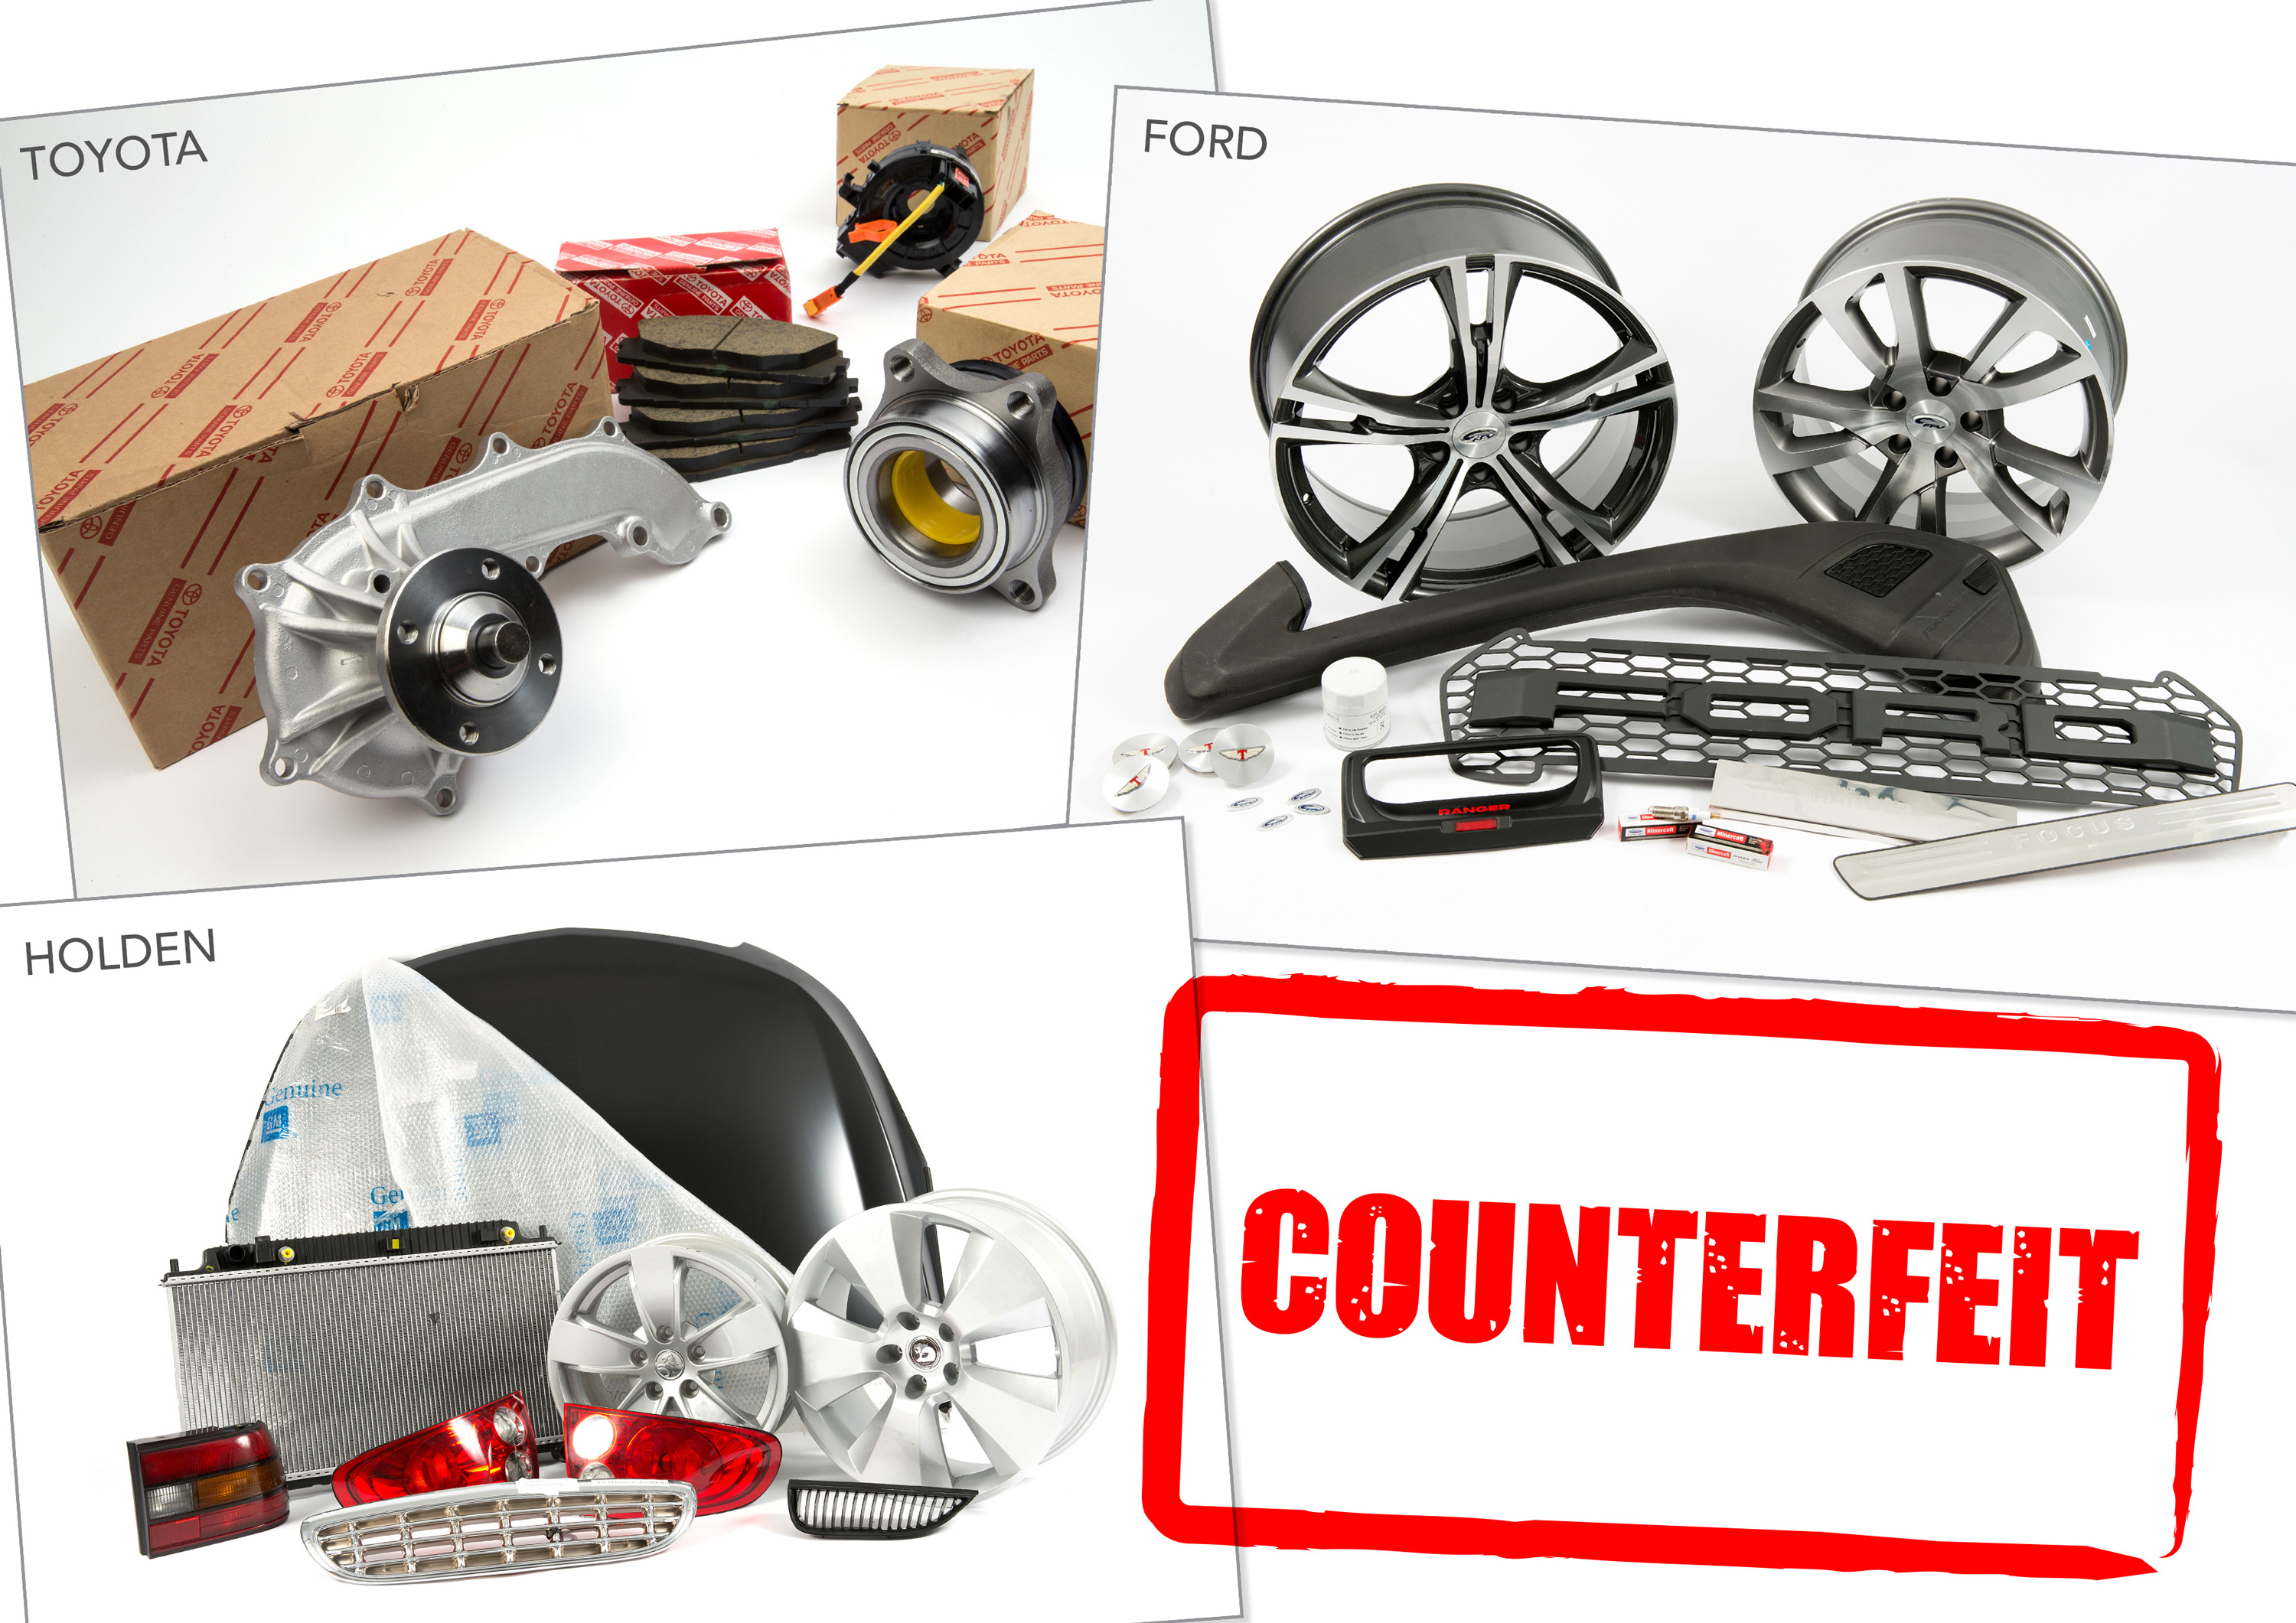 COUNTERFEIT PARTS ISSUE HITS HOME - Genuine is best